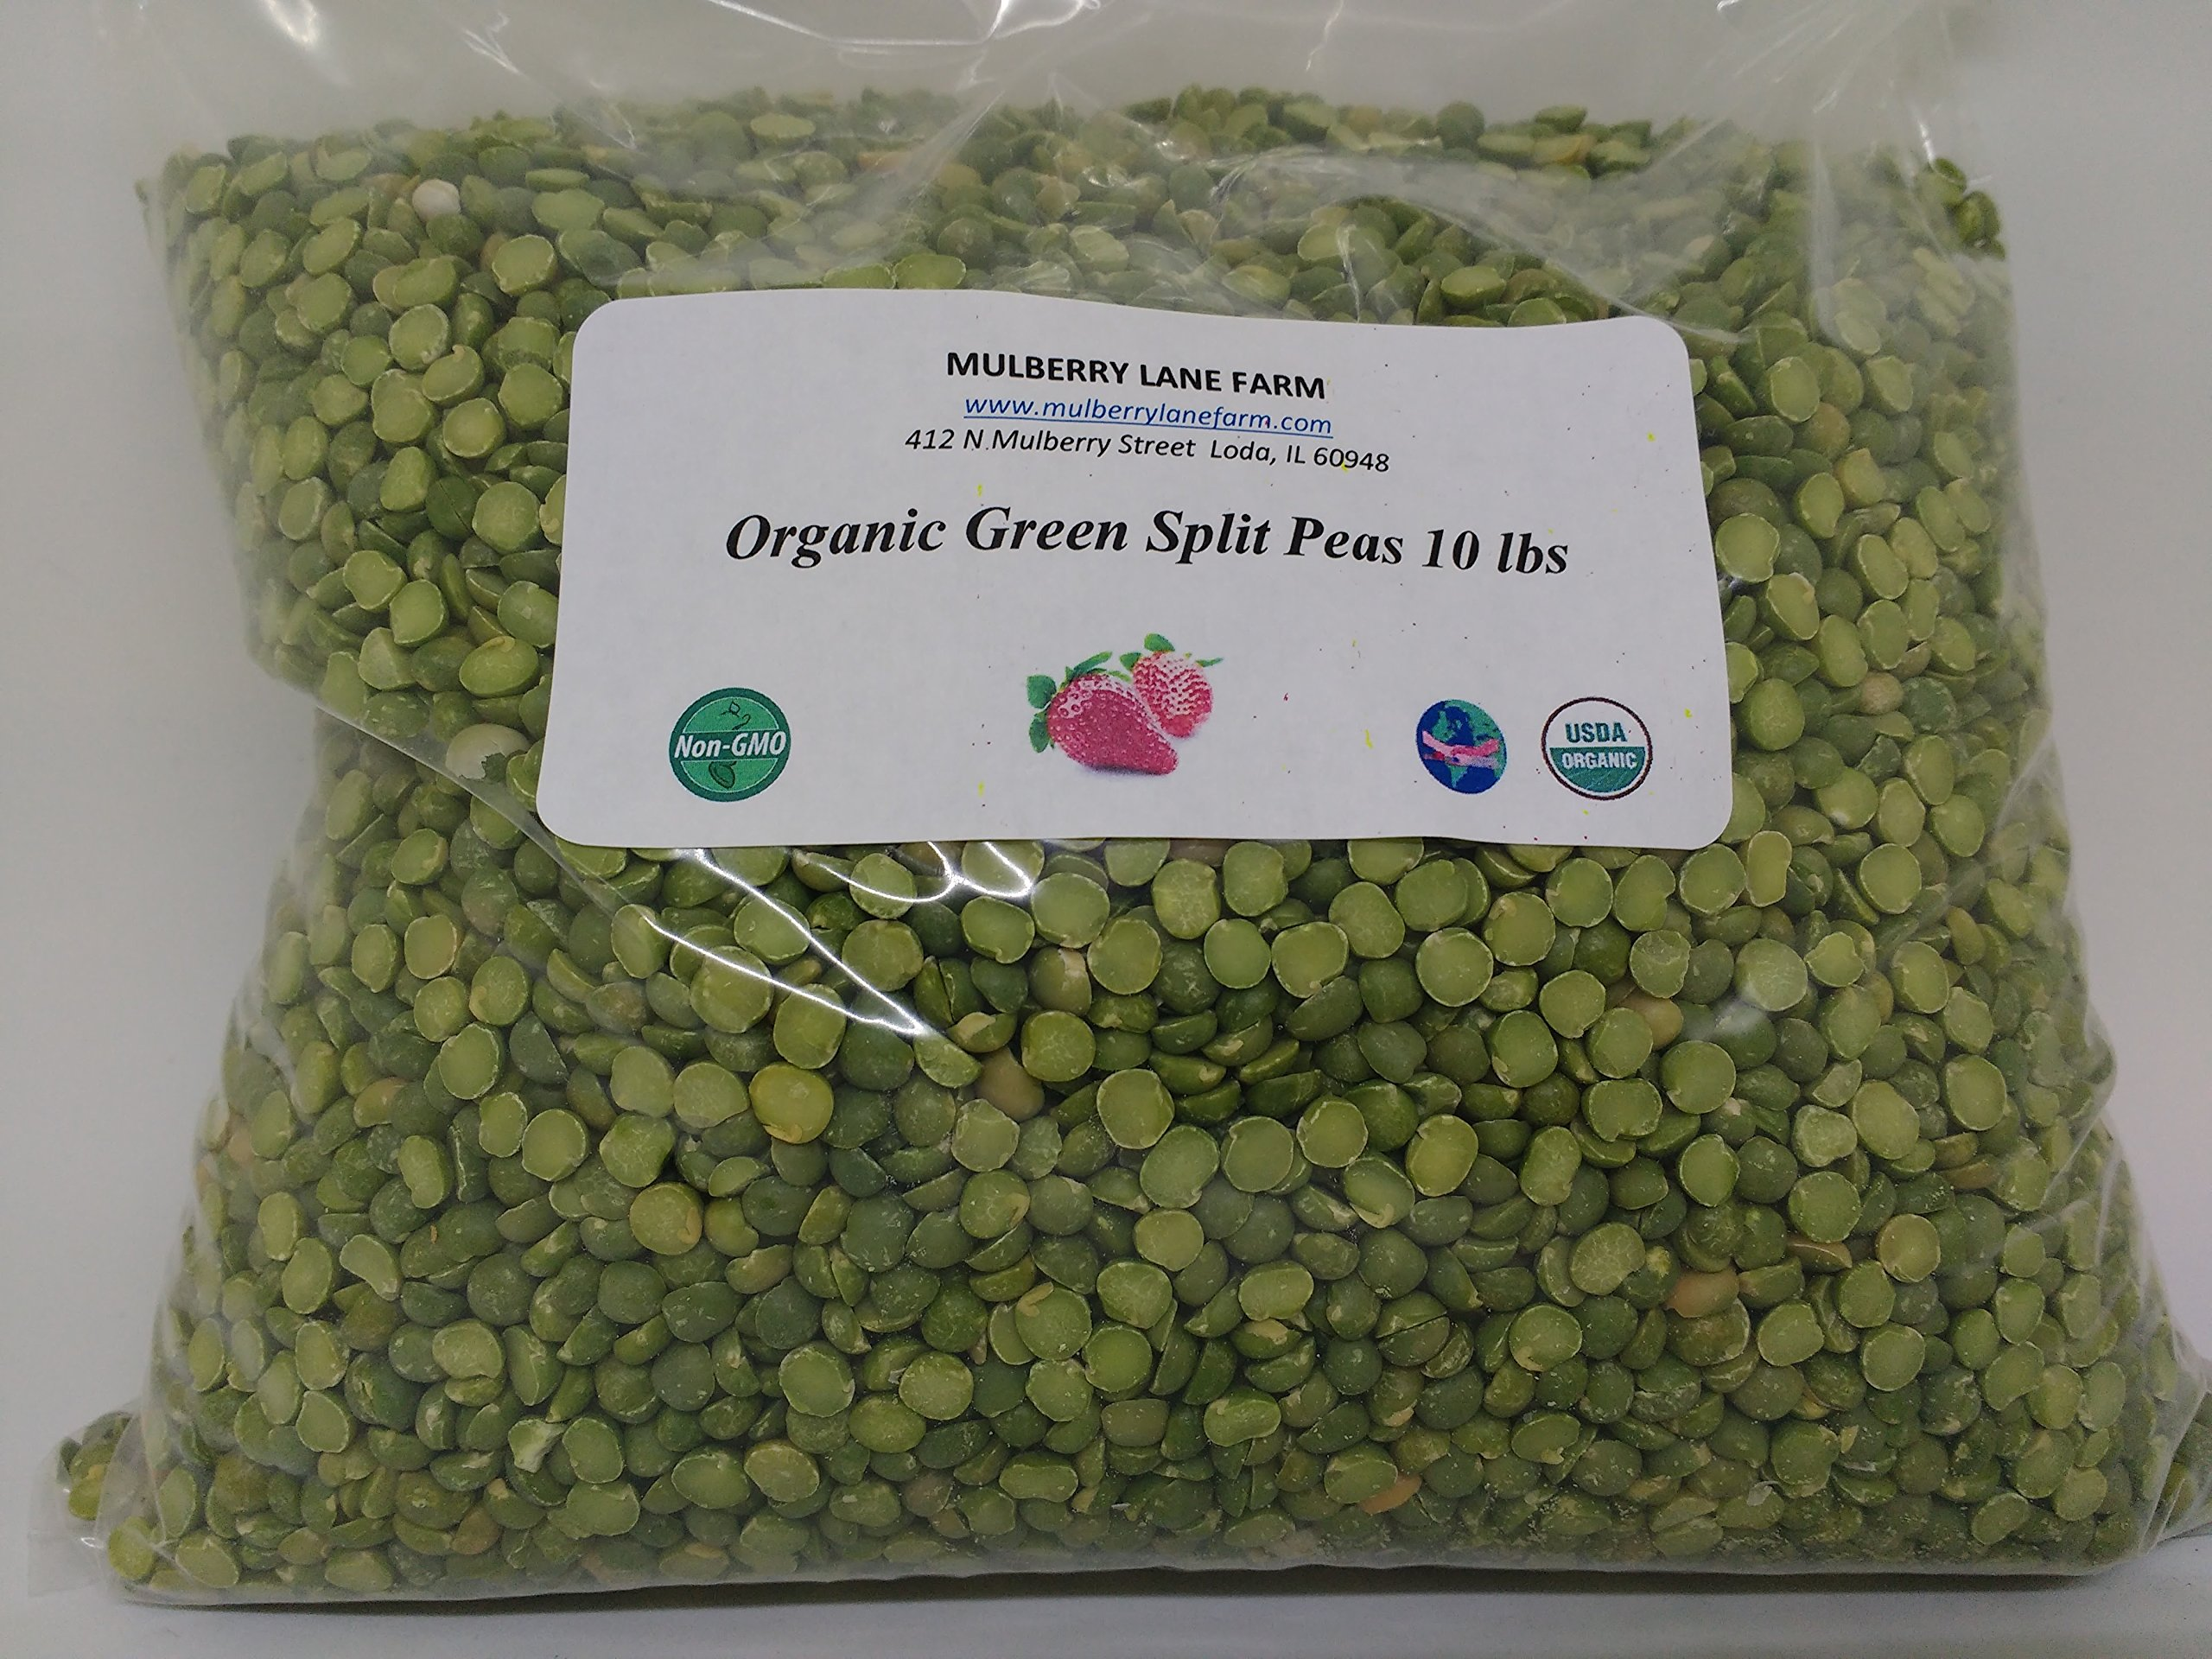 Green Split Peas 10 lbs (ten pounds) USDA Certified Organic, Non-GMO, BULK